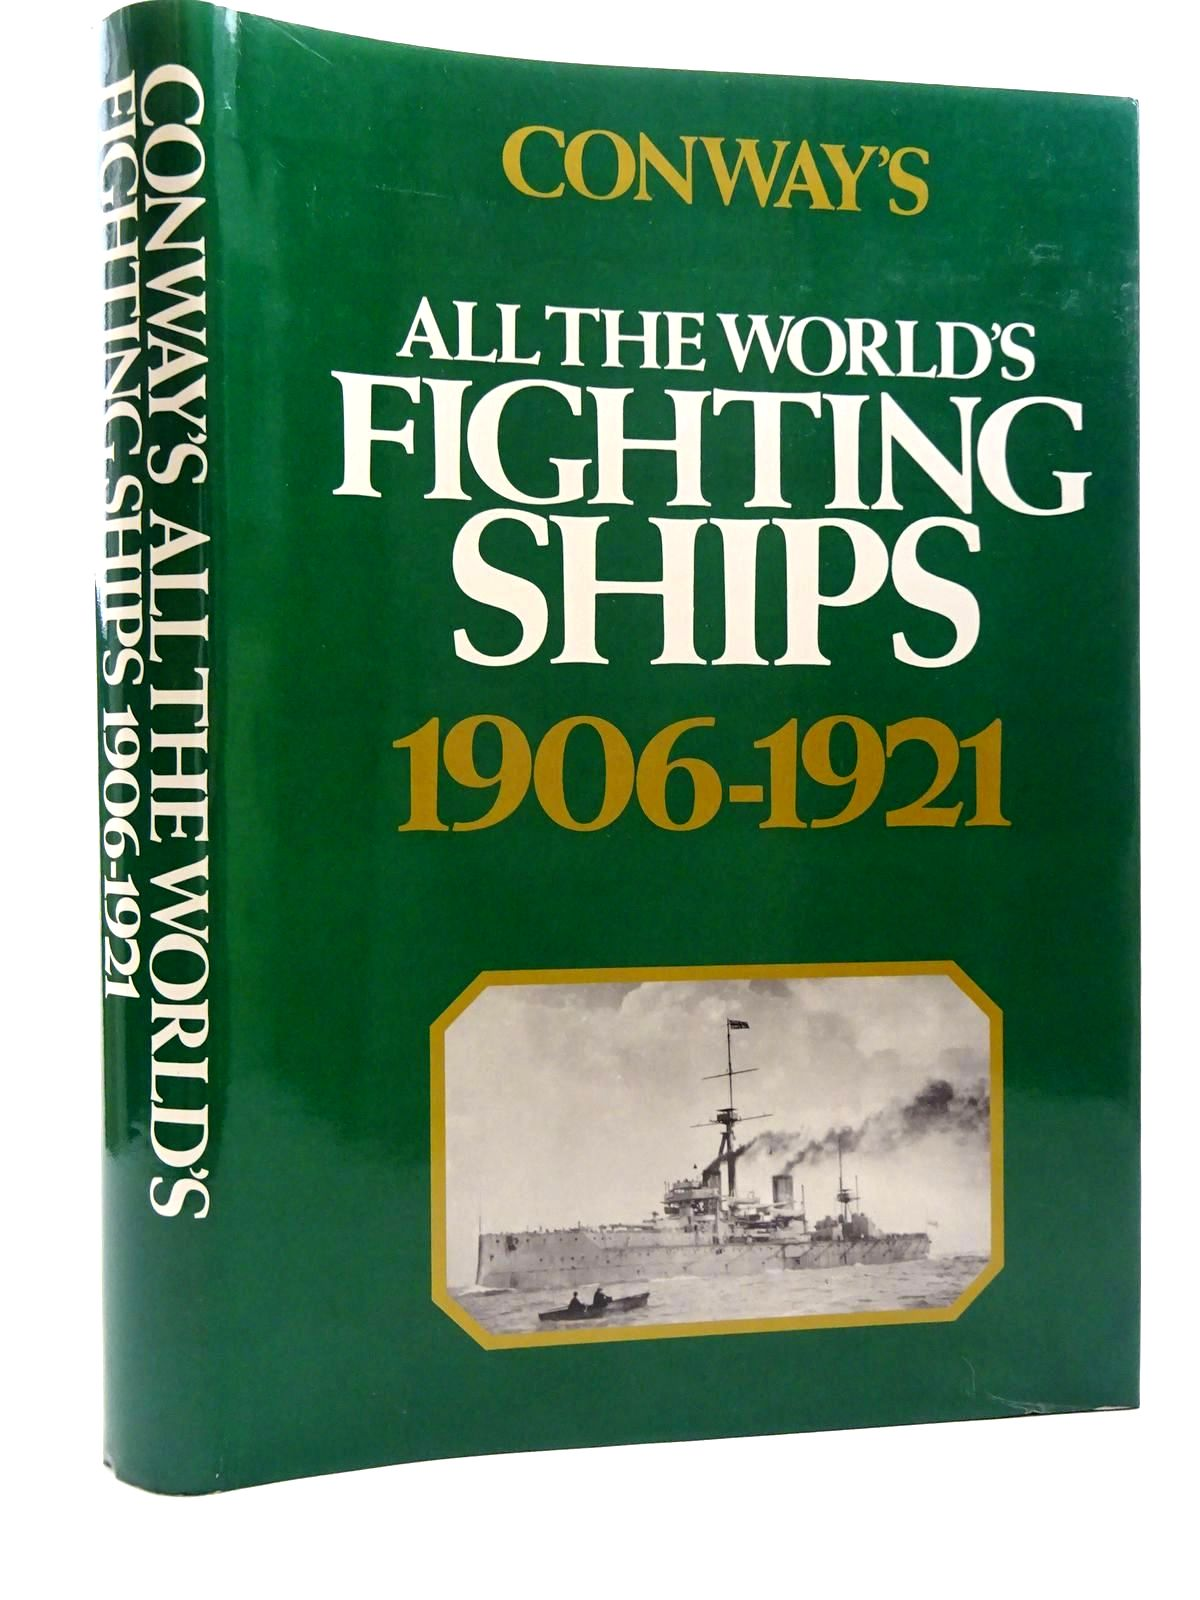 Photo of CONWAY'S ALL THE WORLD'S FIGHTING SHIPS 1906-1921 written by Gardiner, Robert published by Conway Maritime Press (STOCK CODE: 2125286)  for sale by Stella & Rose's Books